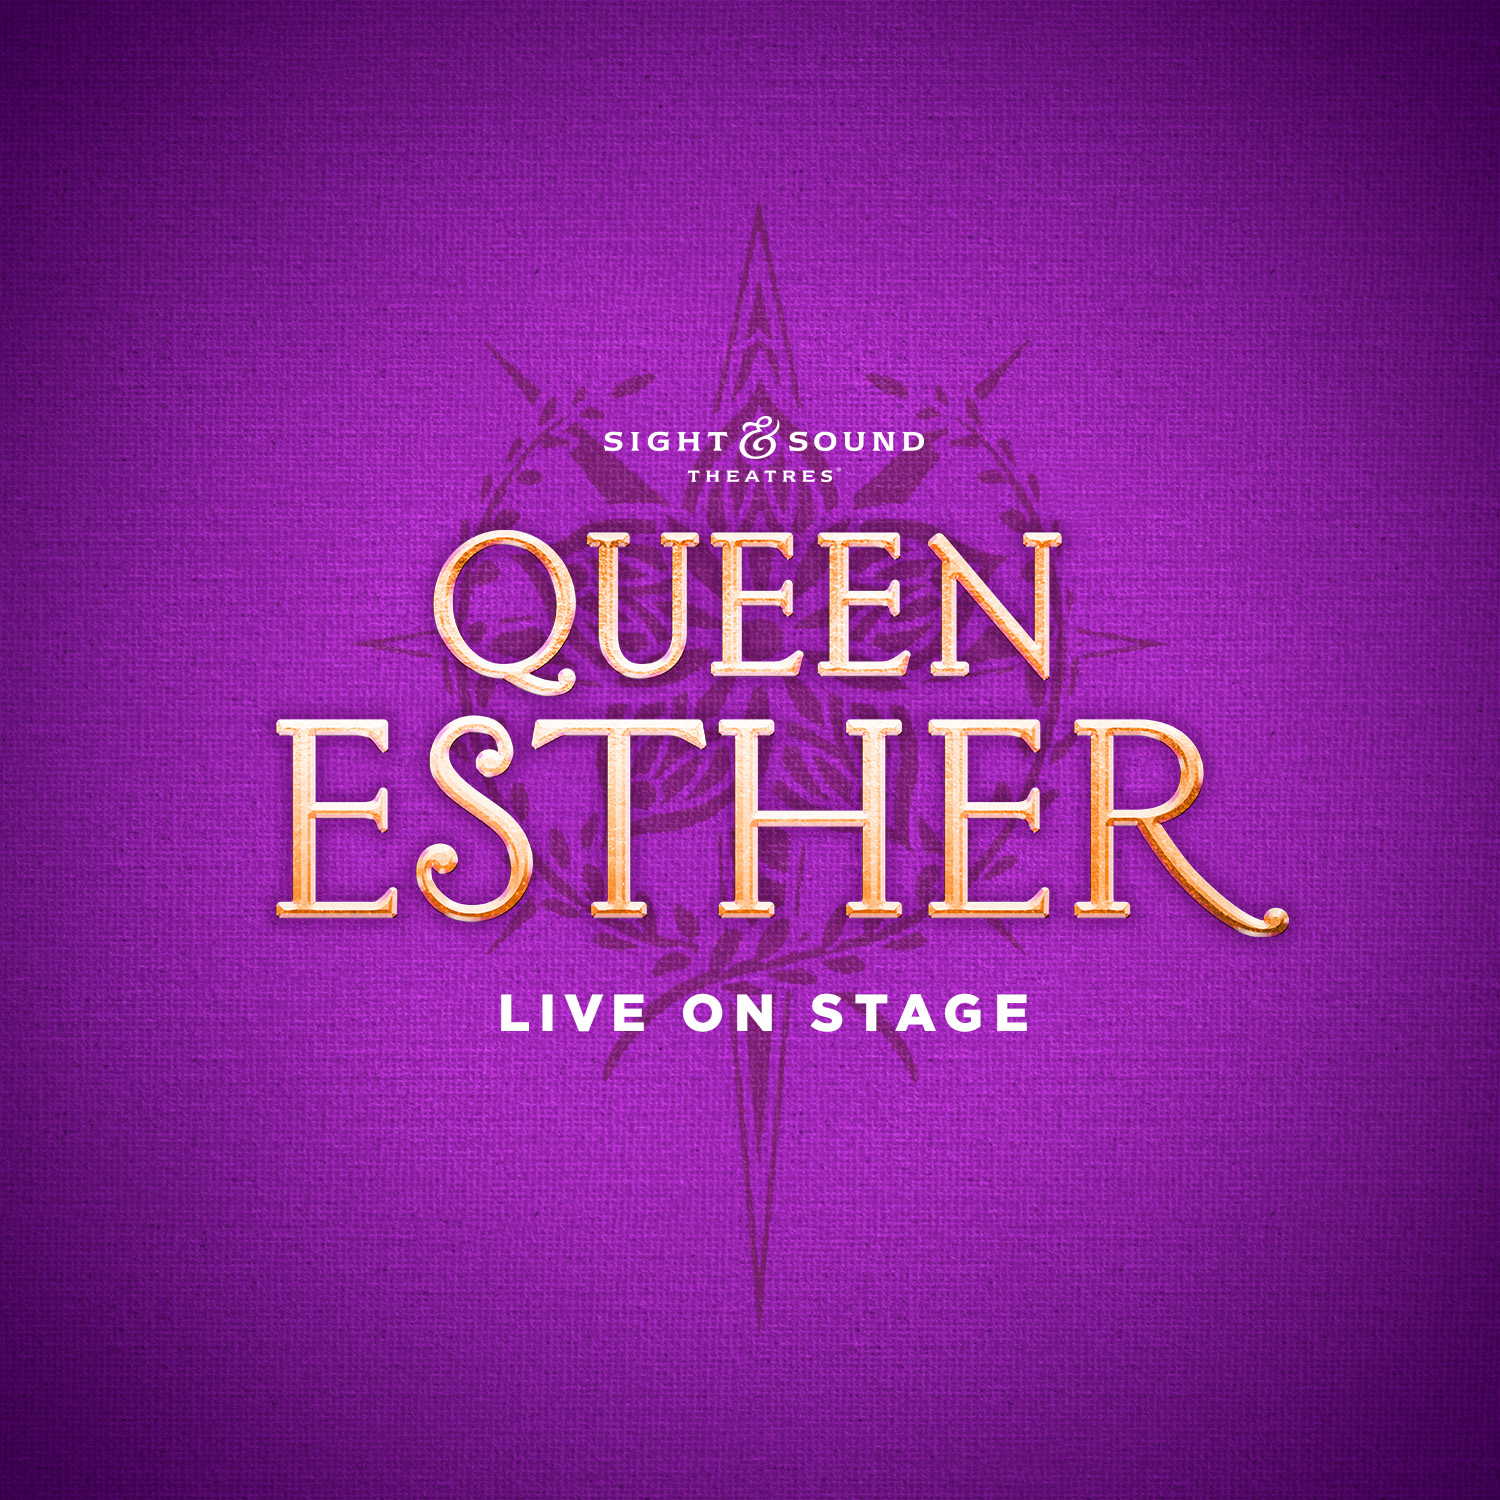 QUEEN ESTHER by Sight & Sound Theatres